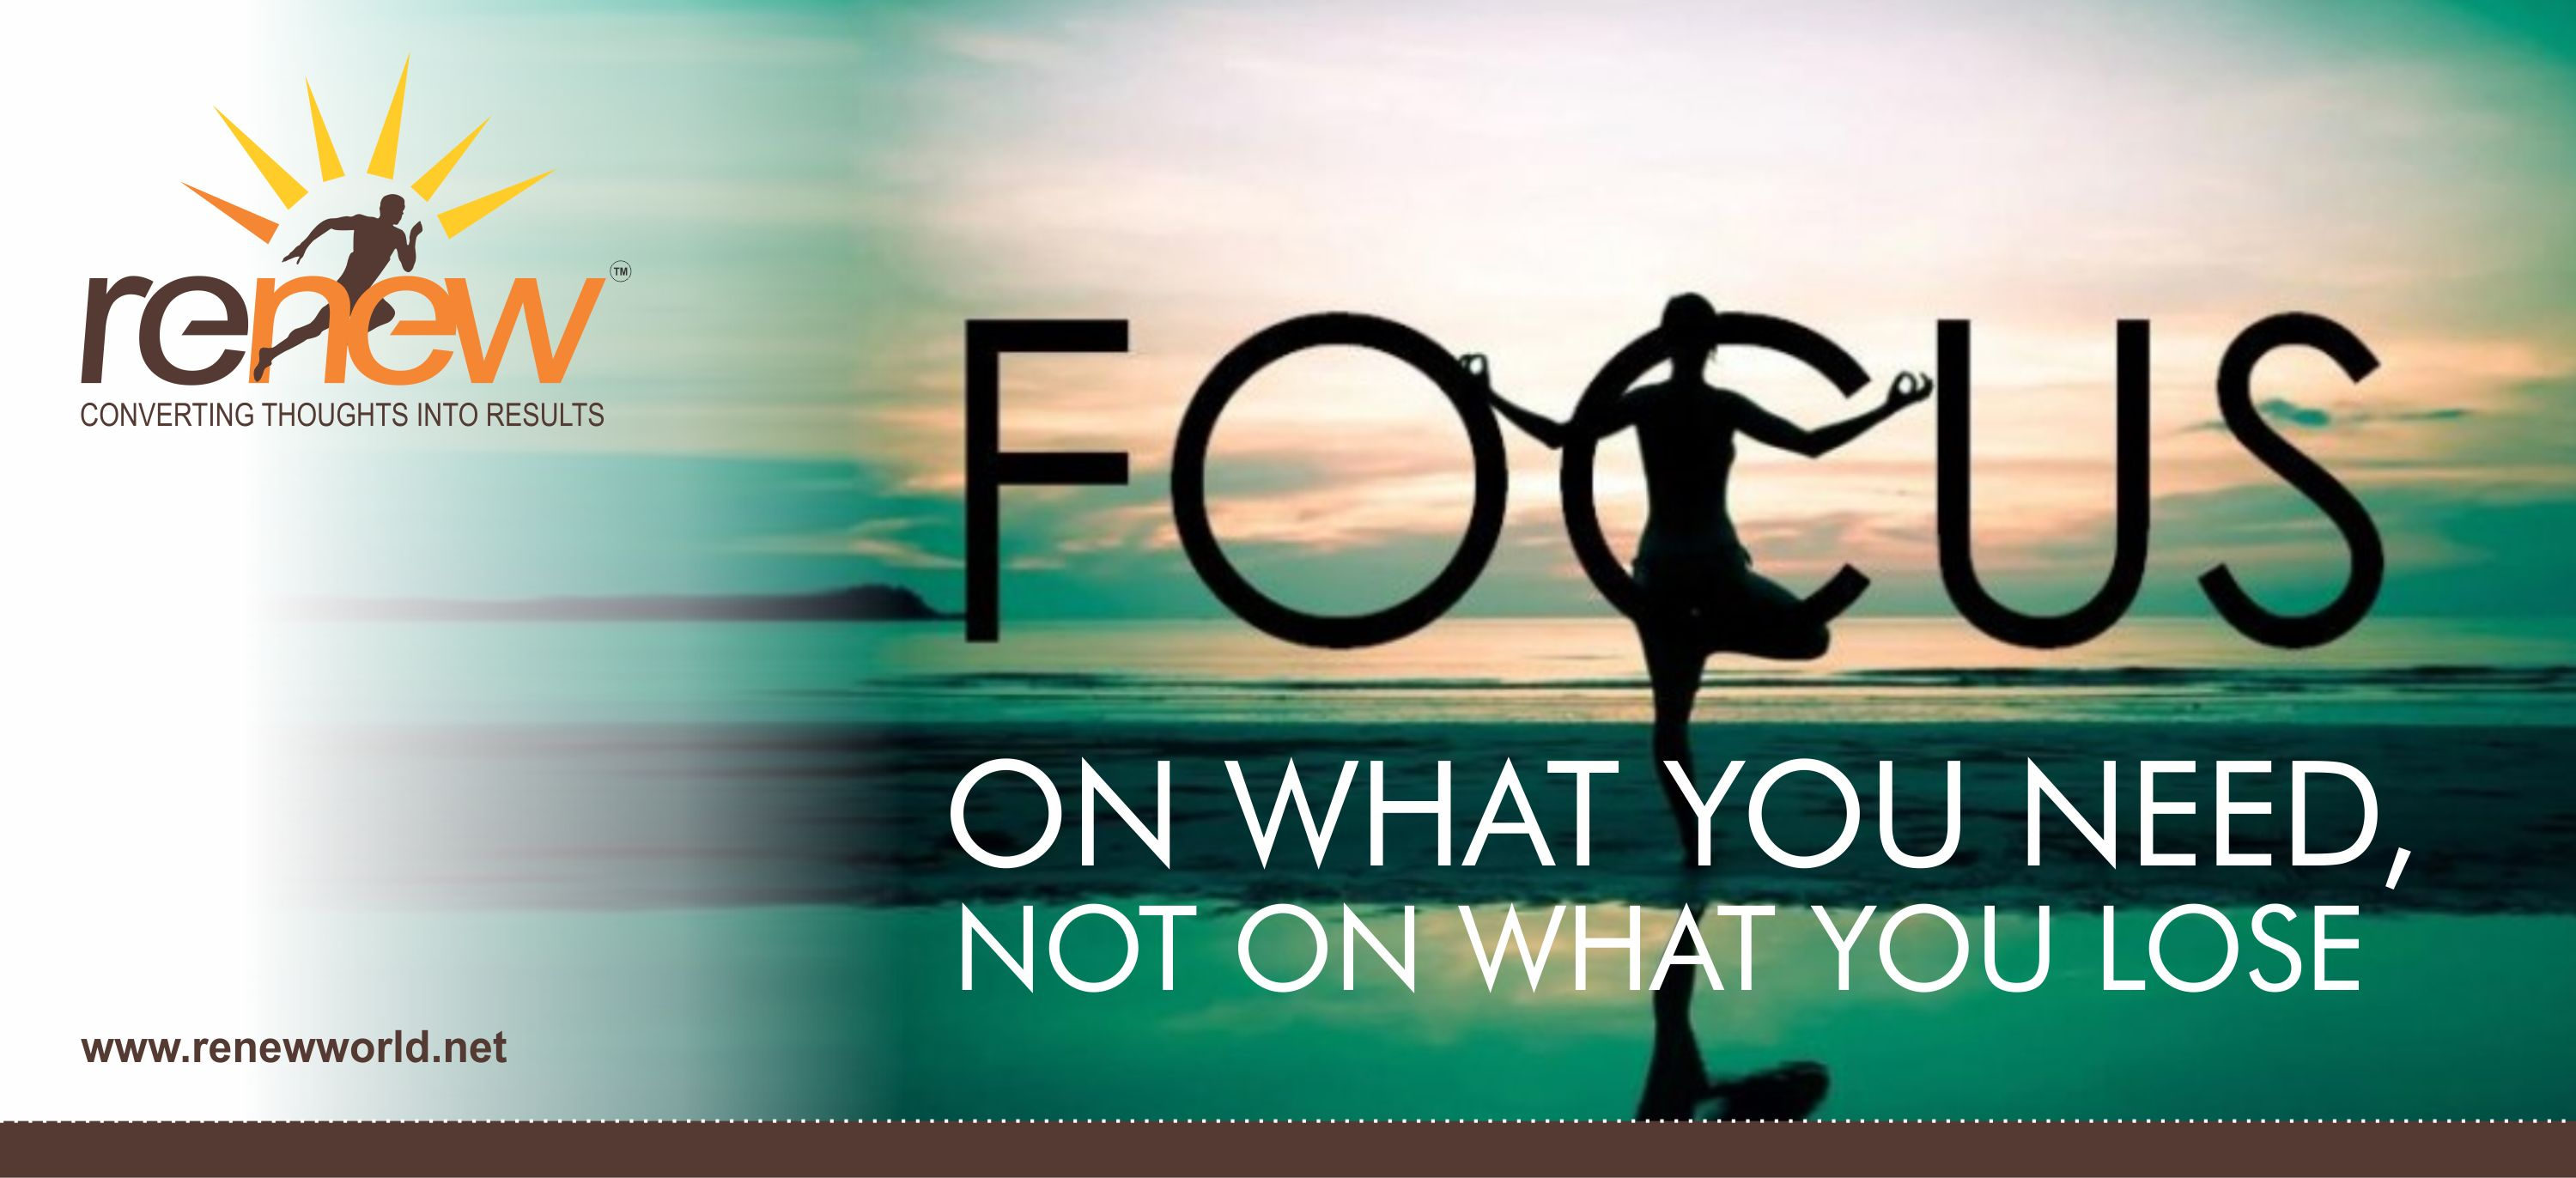 Focus on what you need, not on what you lose